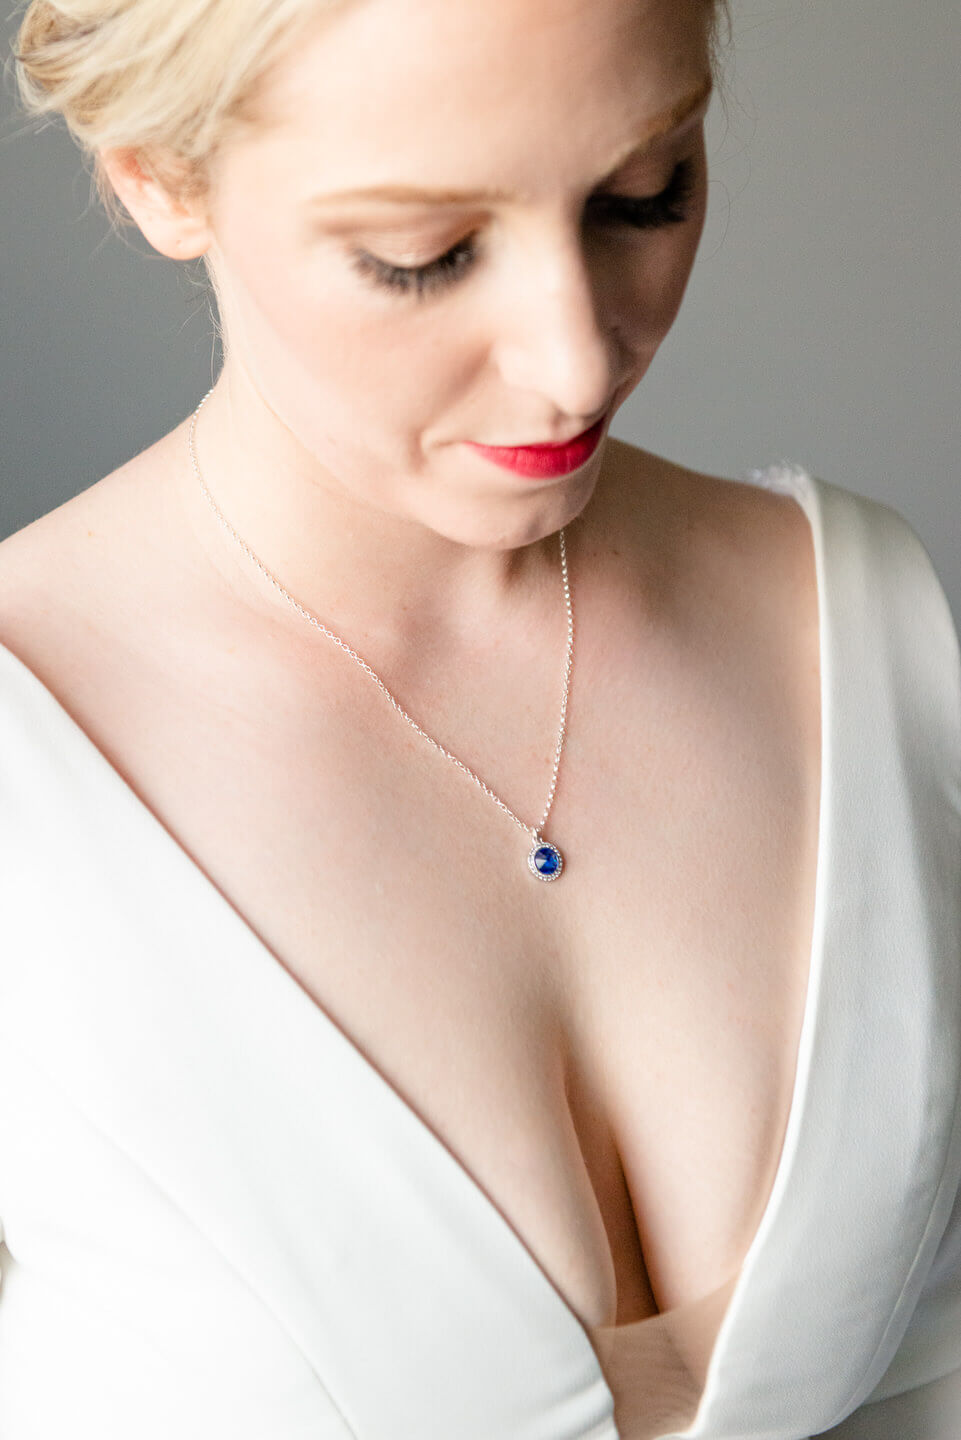 Bride's Necklace - Pre-Wedding Bridal Portraits